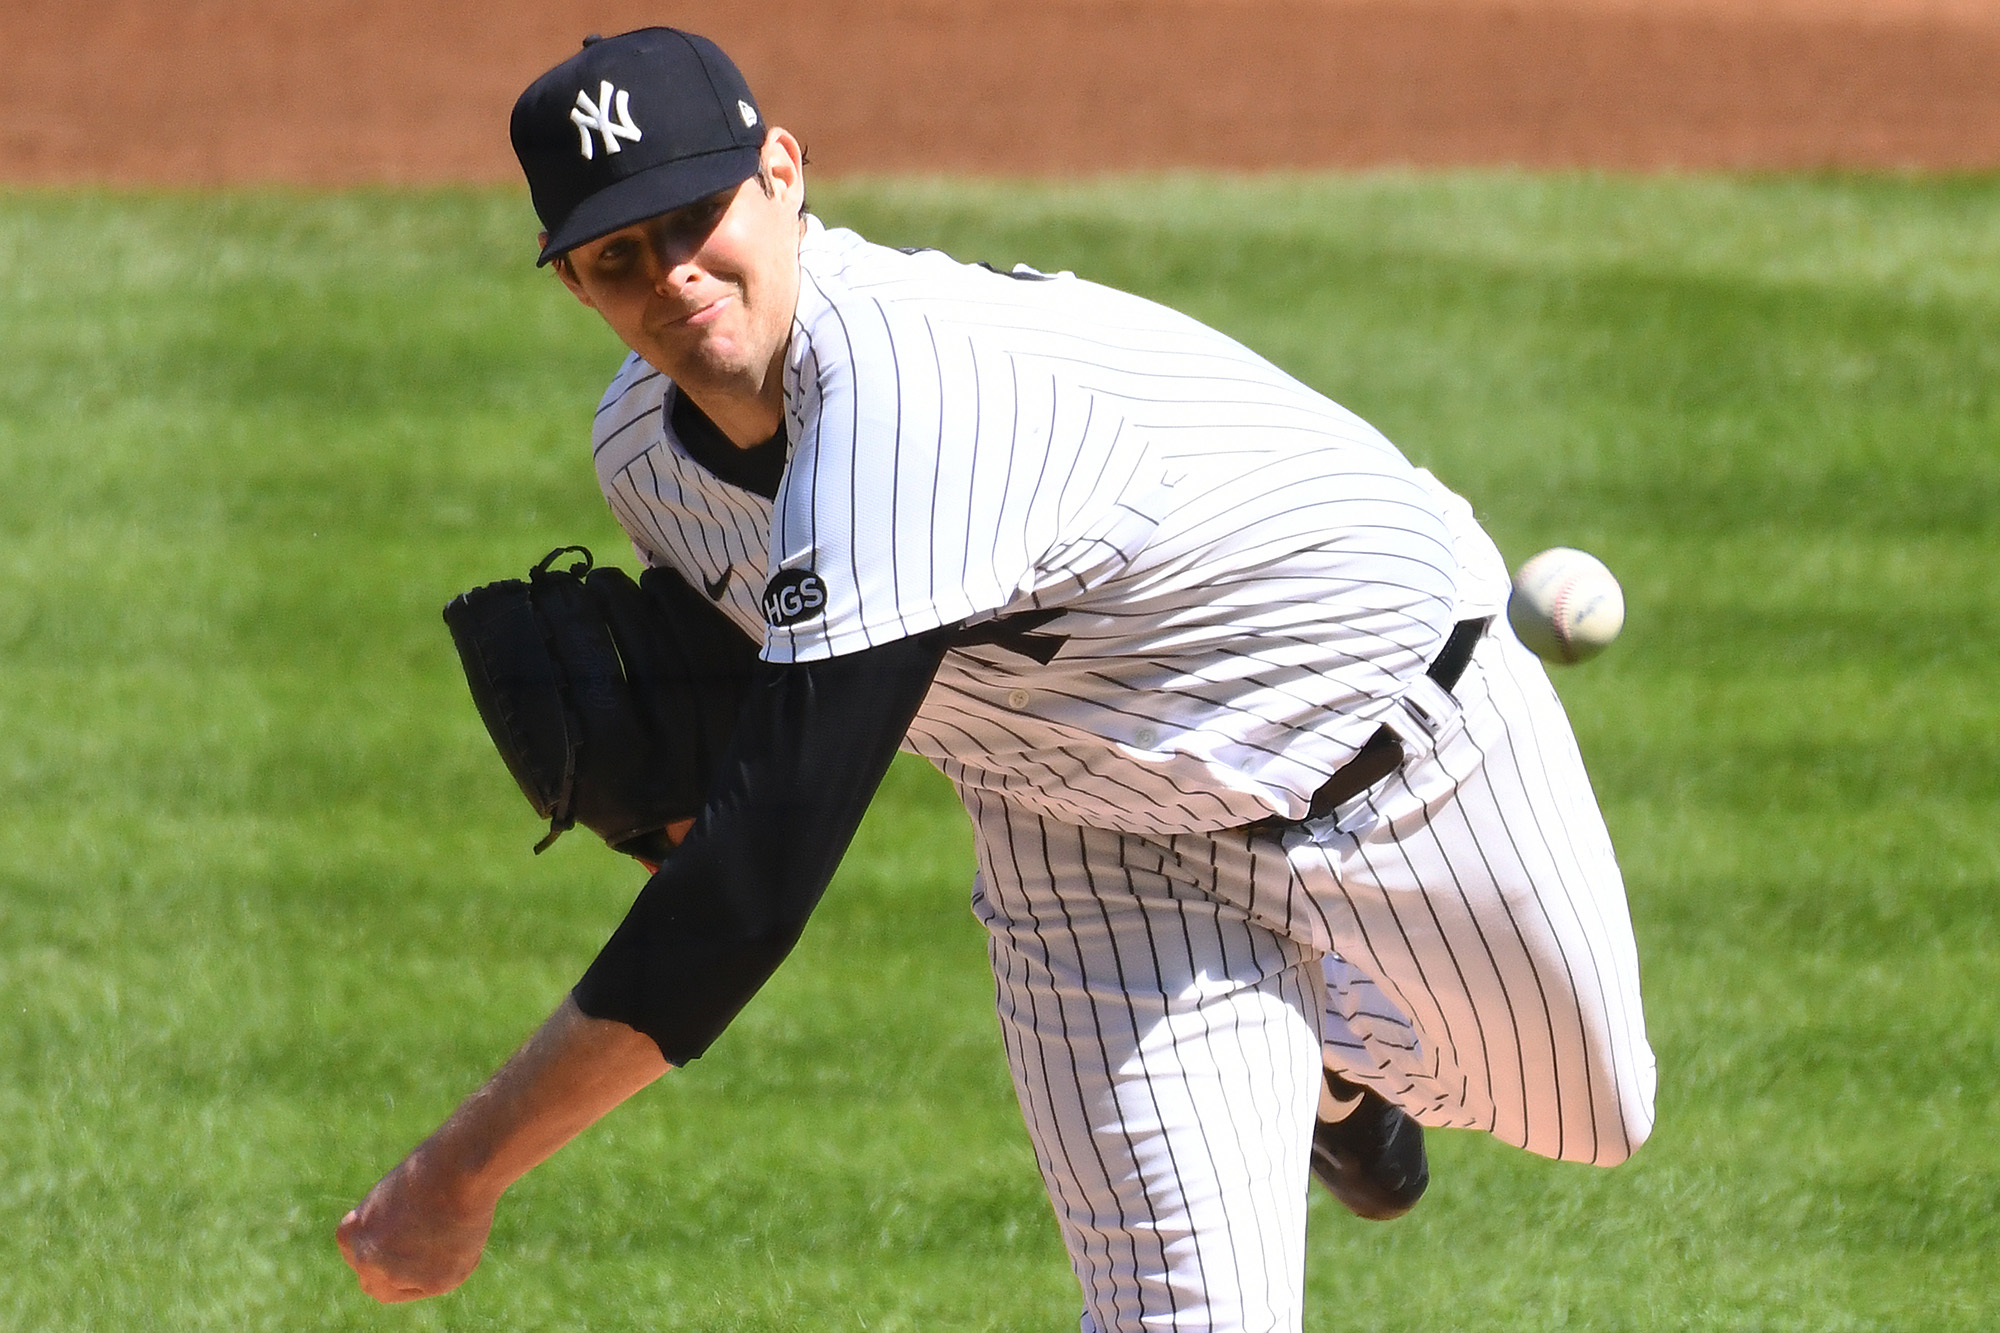 Jordan Montgomery's Yankees role up in the air for first round